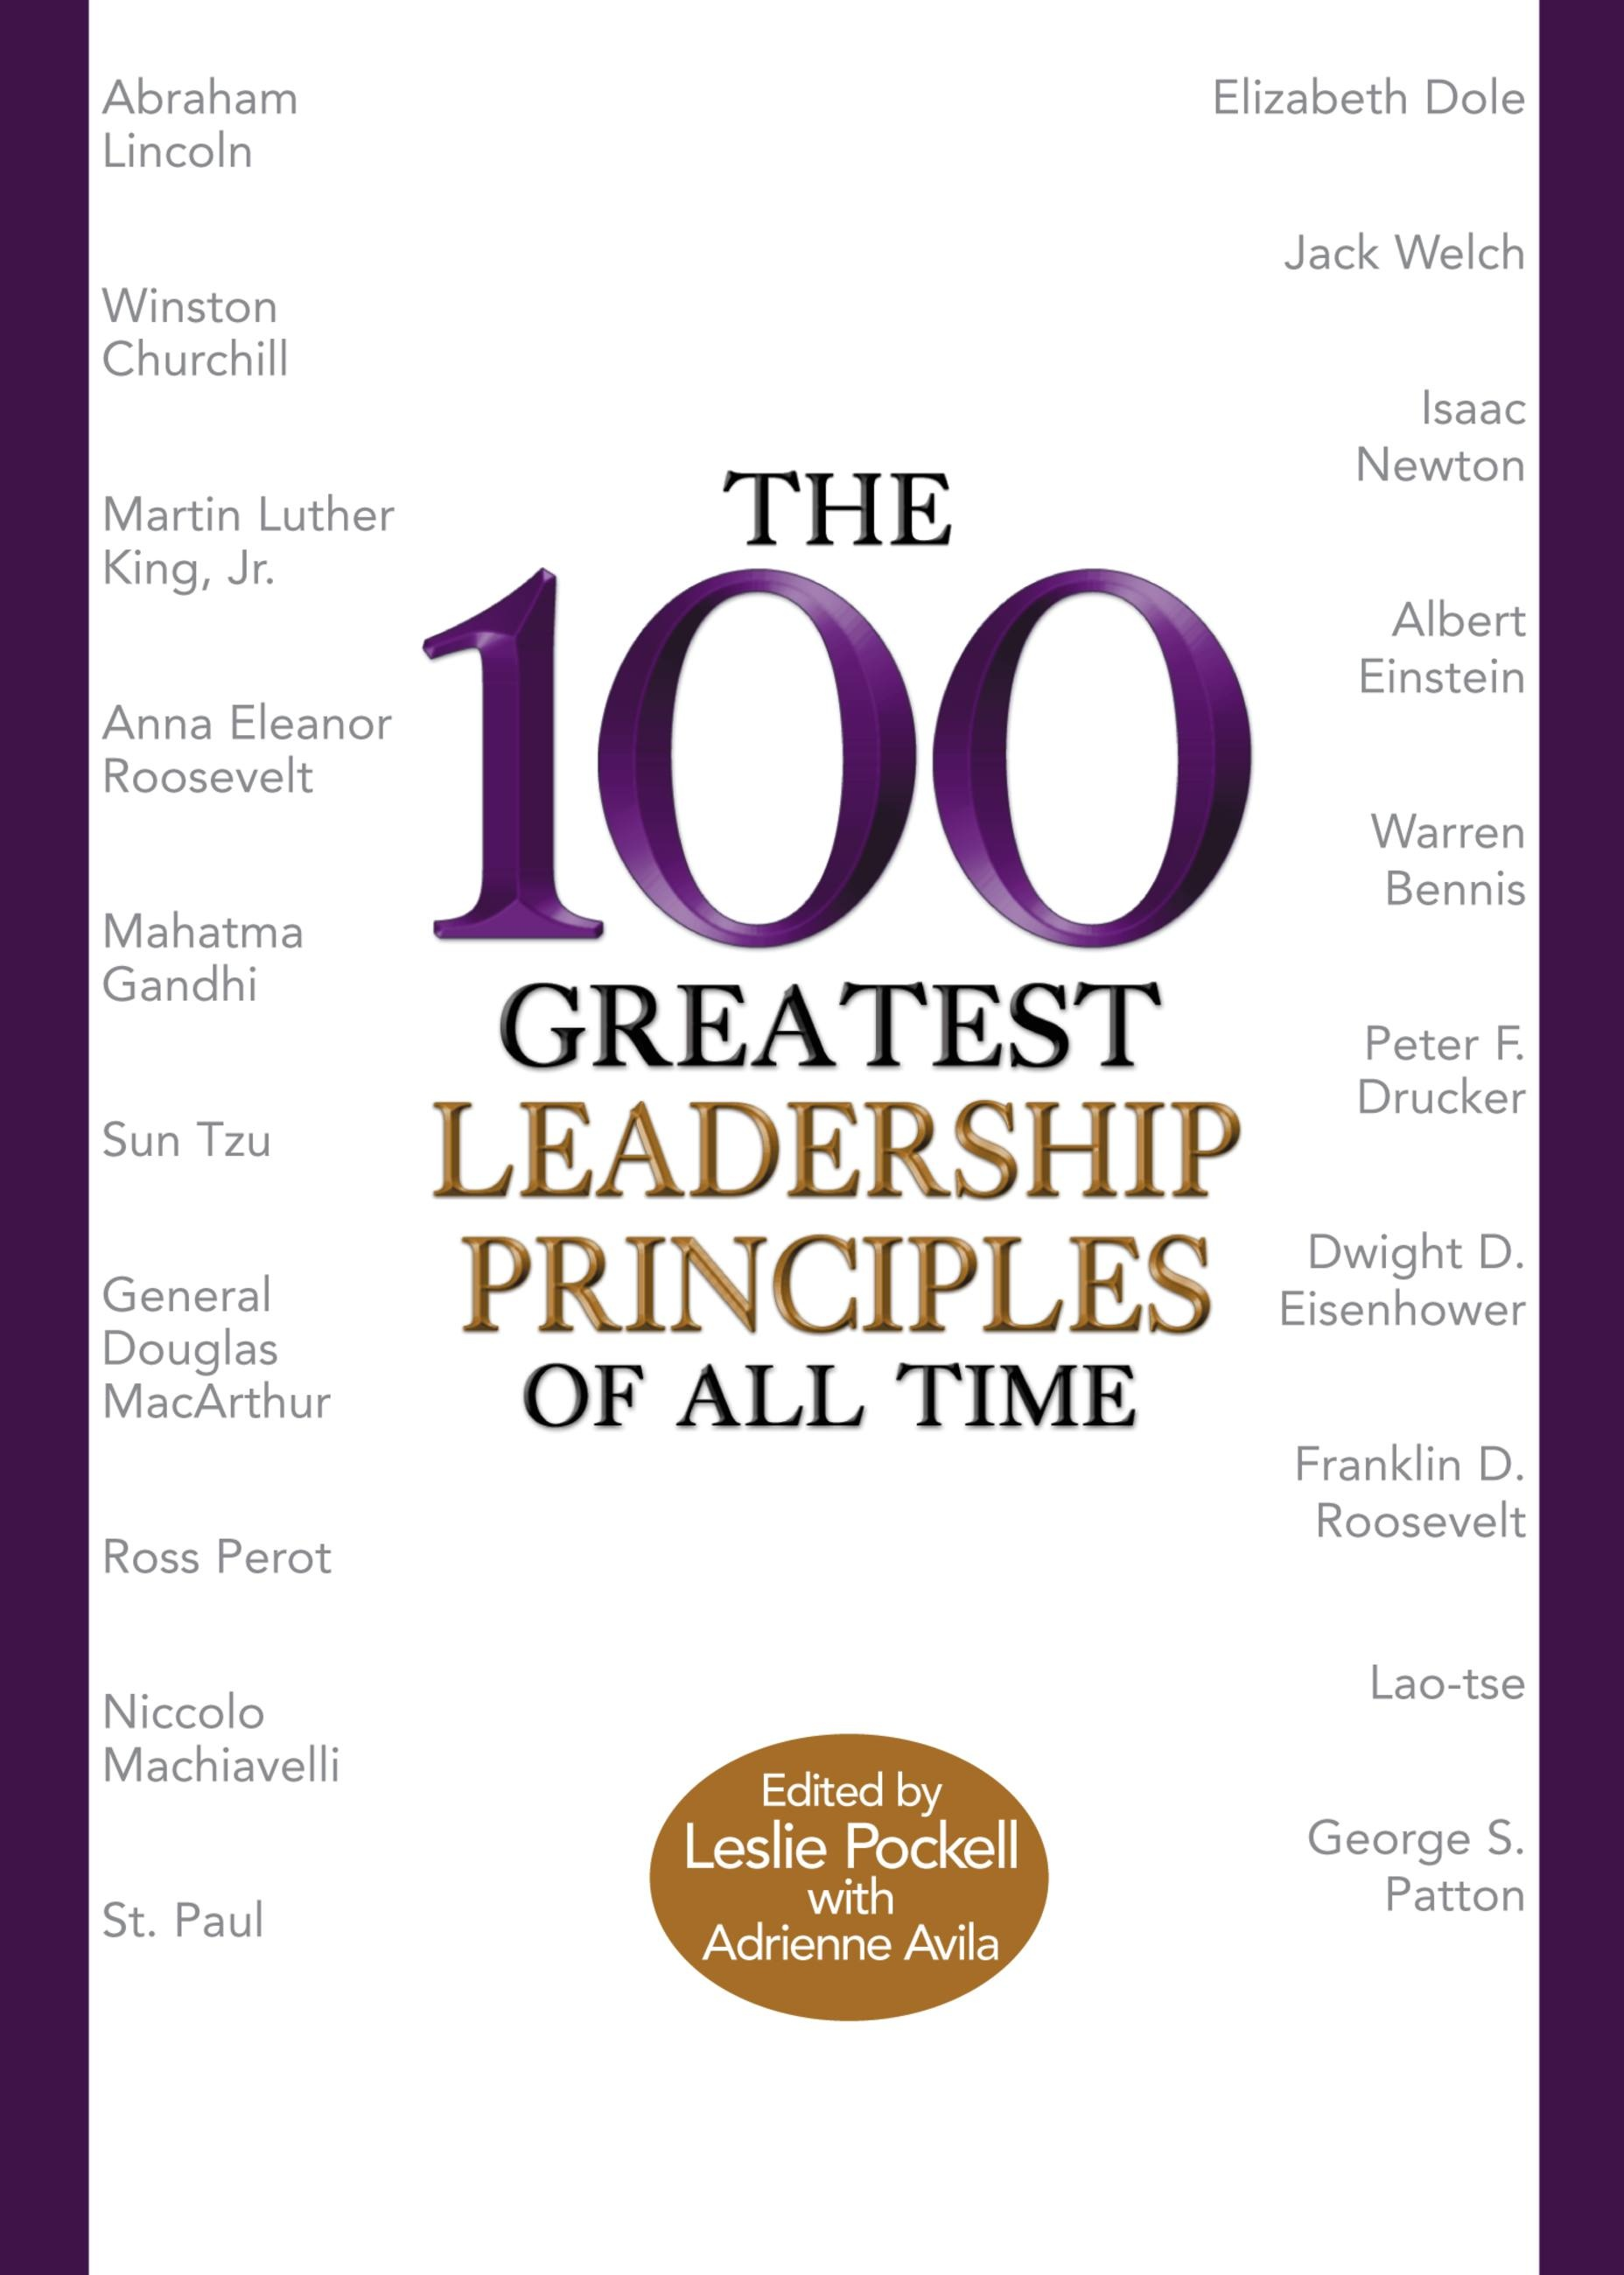 The 100 Greatest Leadership Principles of All Time